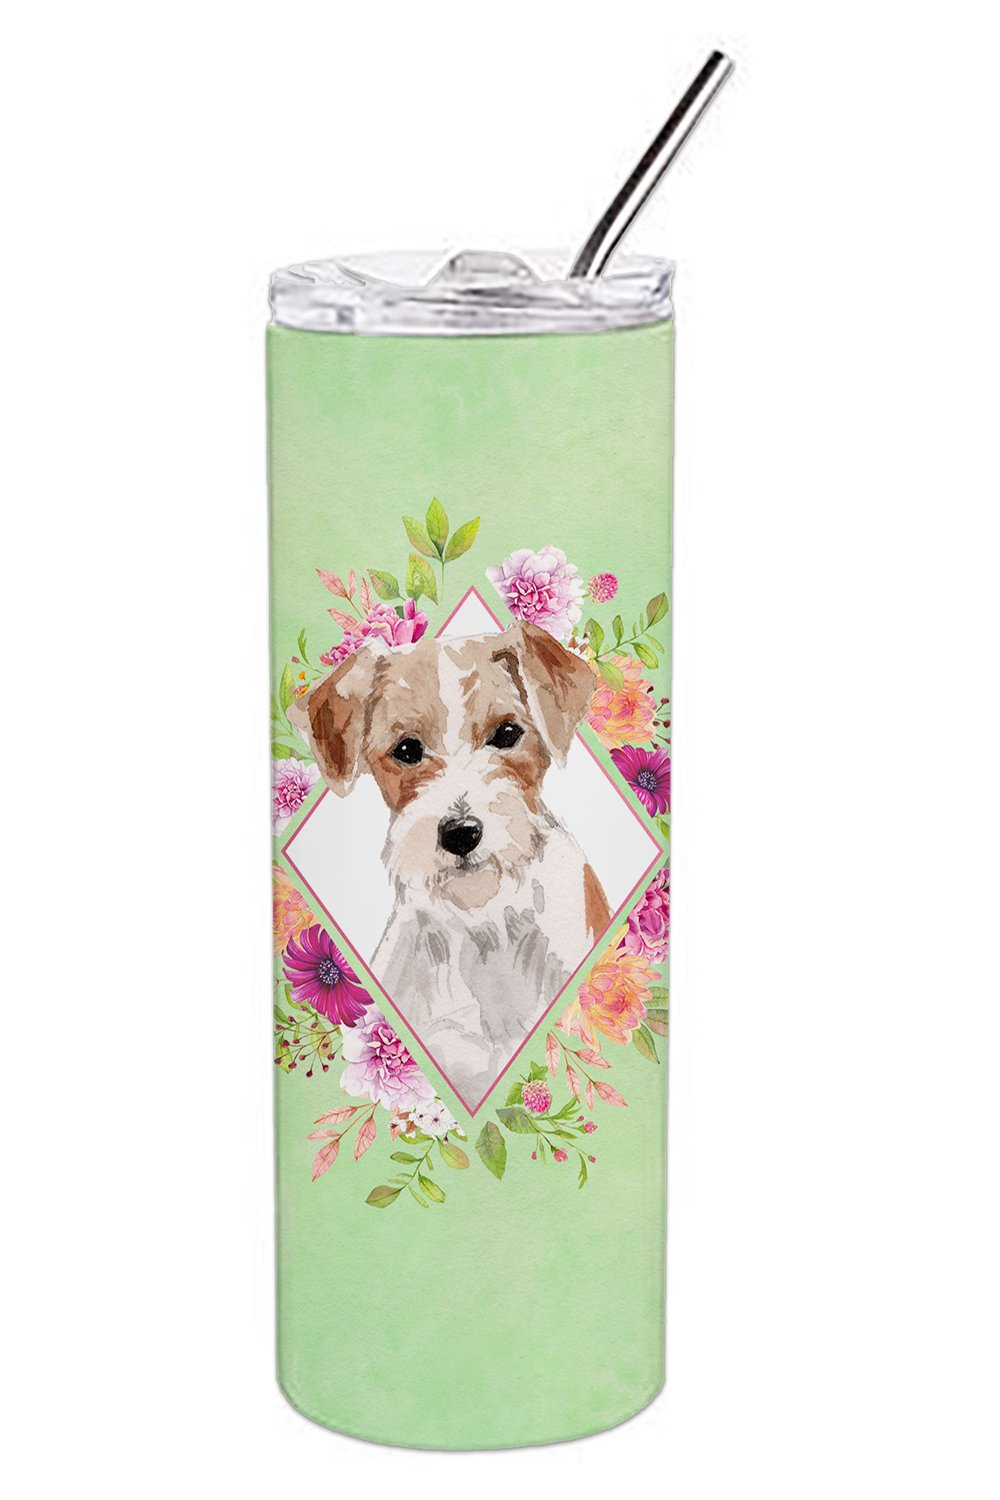 Jack Russell Terrier Green Flowers Double Walled Stainless Steel 20 oz Skinny Tumbler CK4358TBL20 by Caroline's Treasures